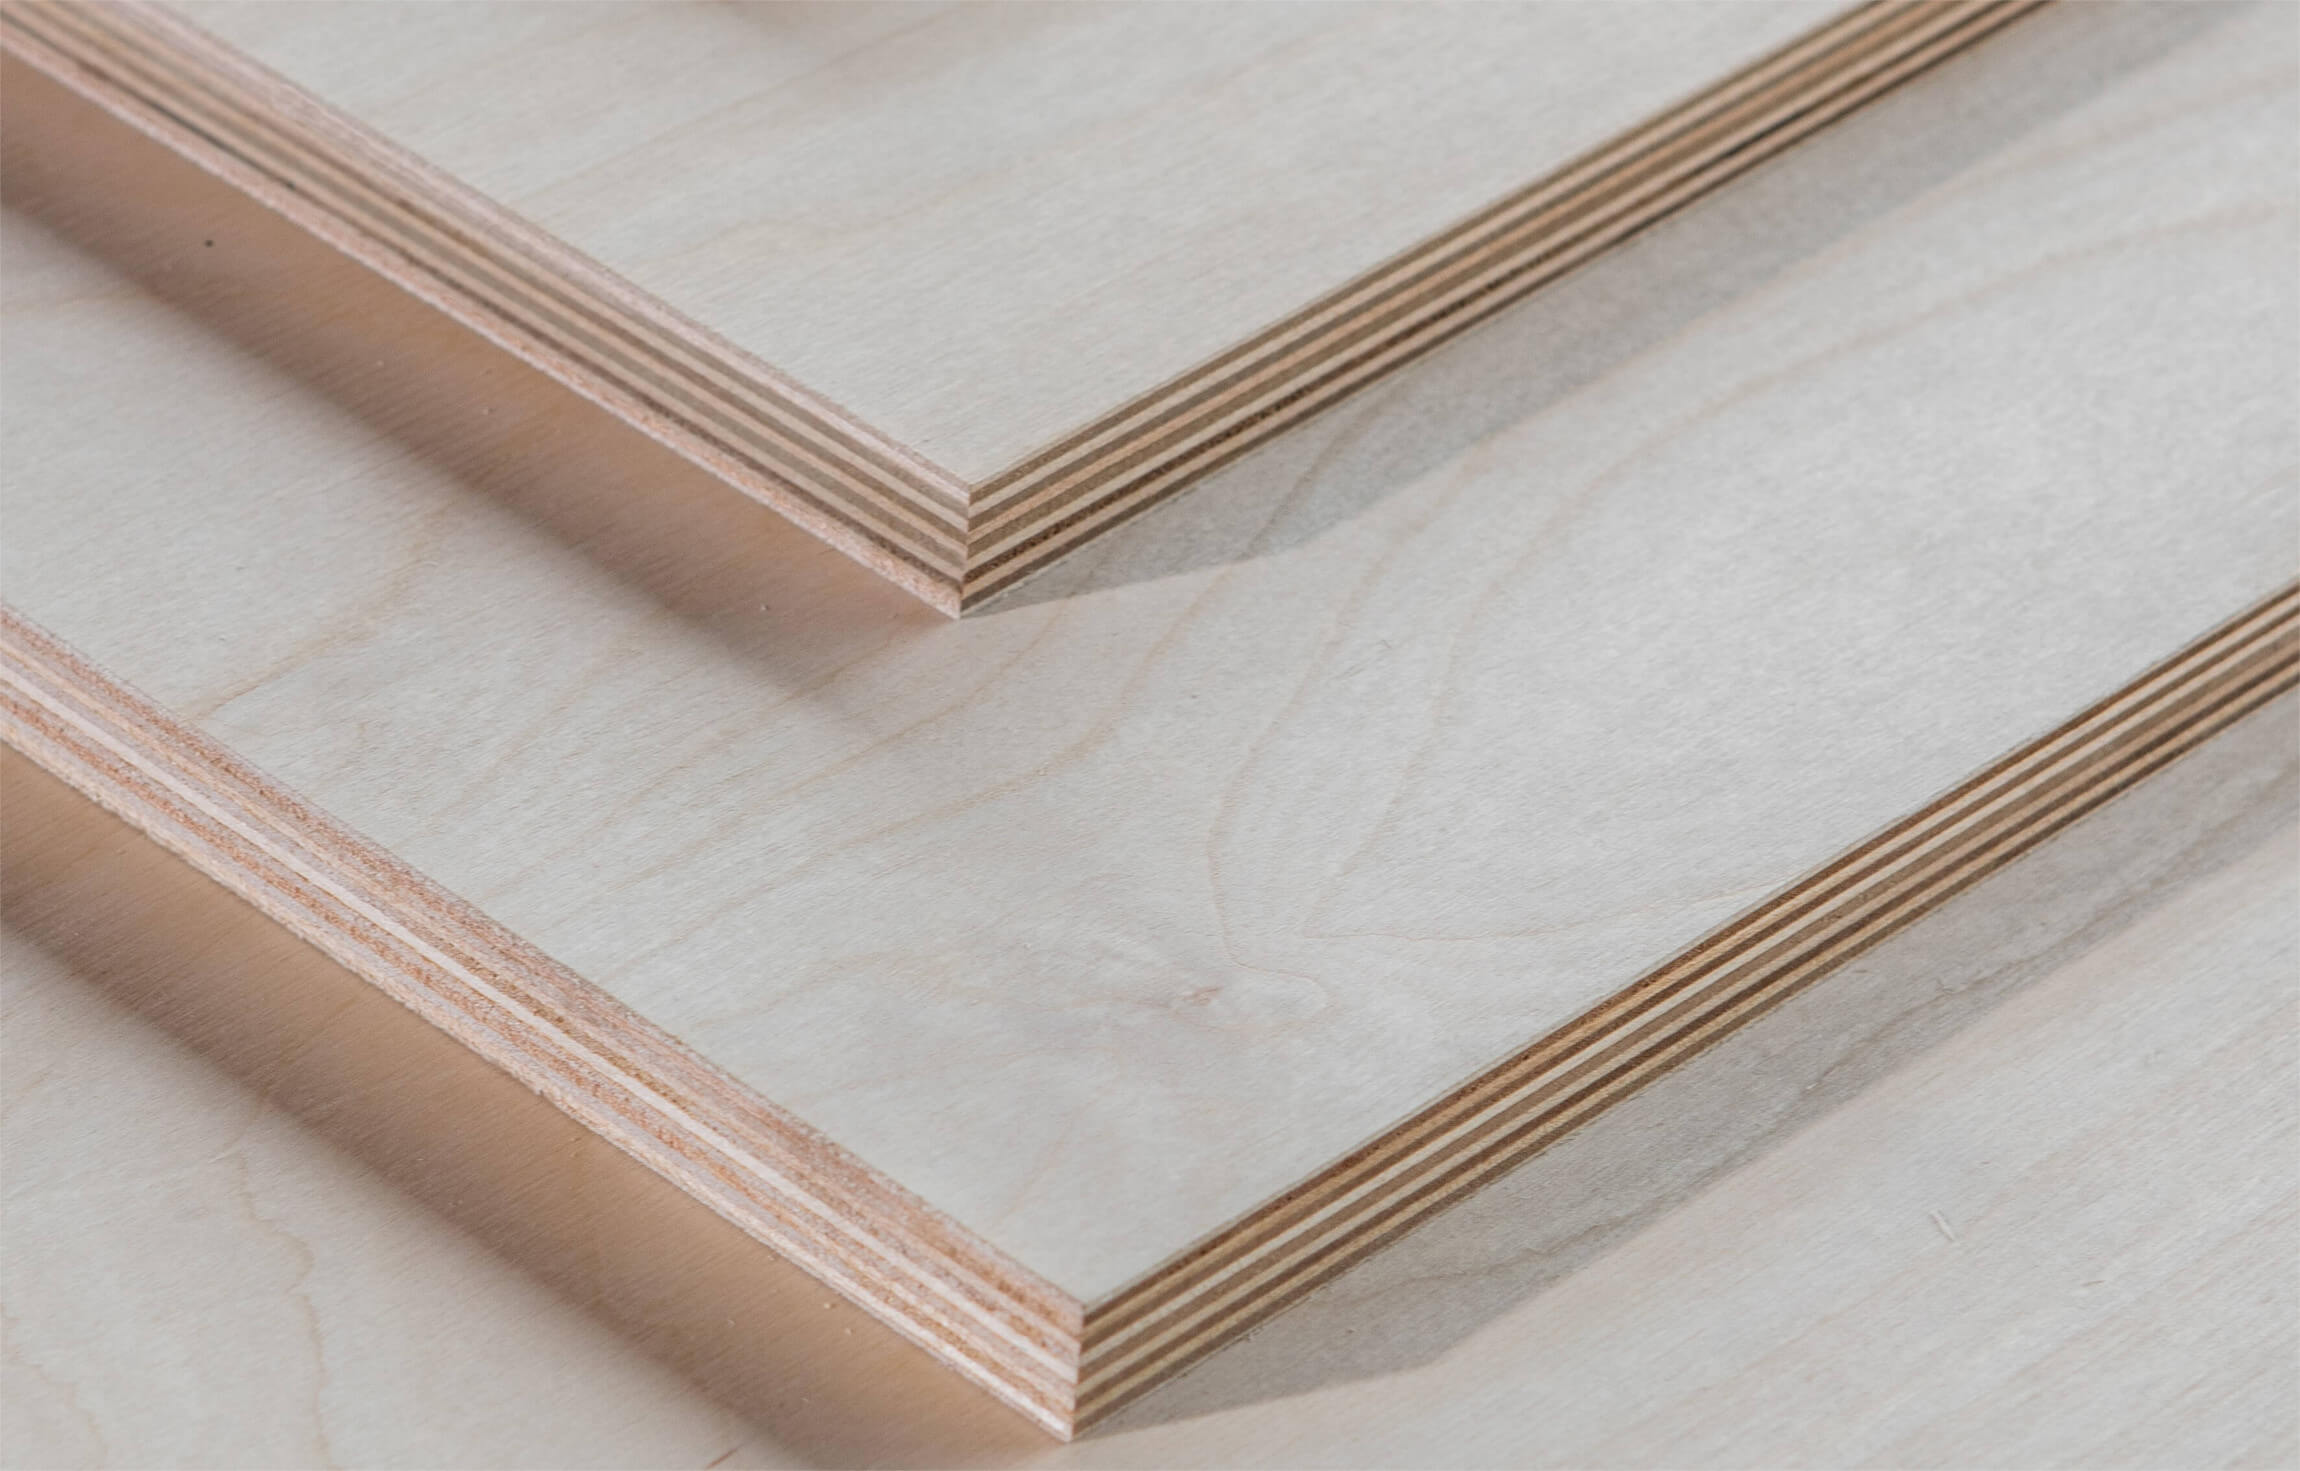 High grade furniture plywood without knots grade b bb b bb for Furniture quality plywood